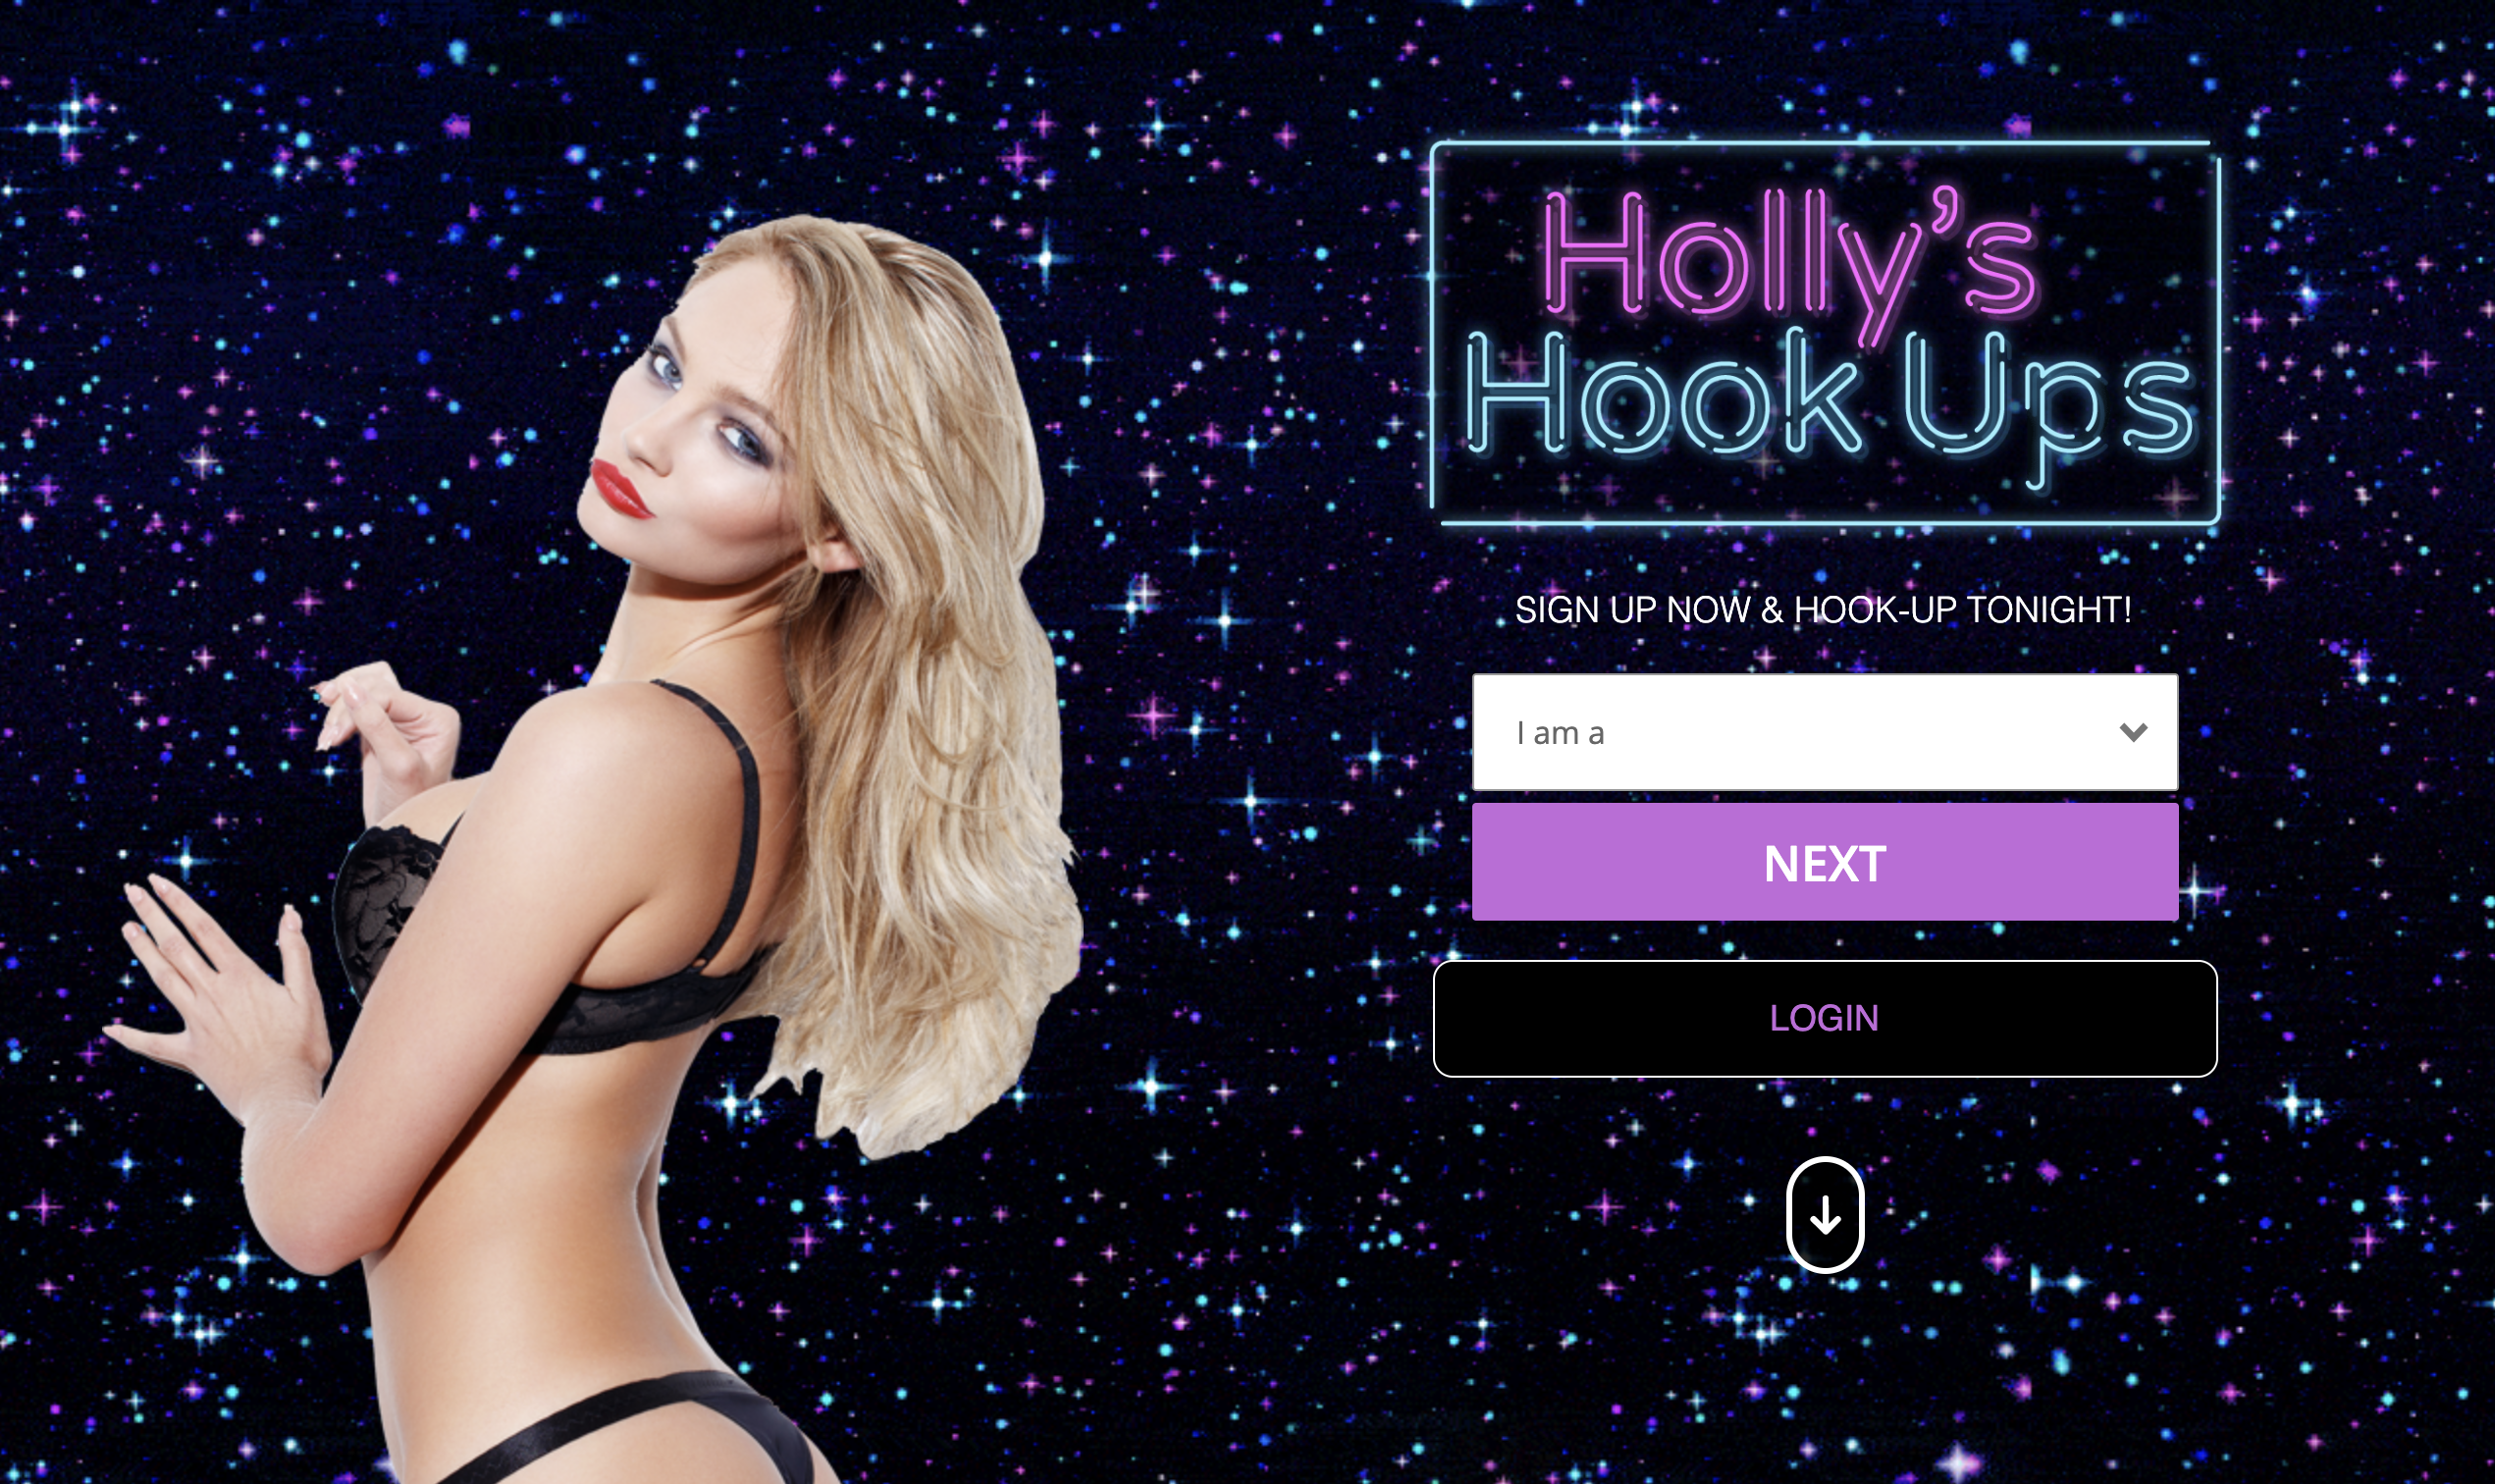 Holly's Hookups Dating Site for Hookups from Geordie Shore Star